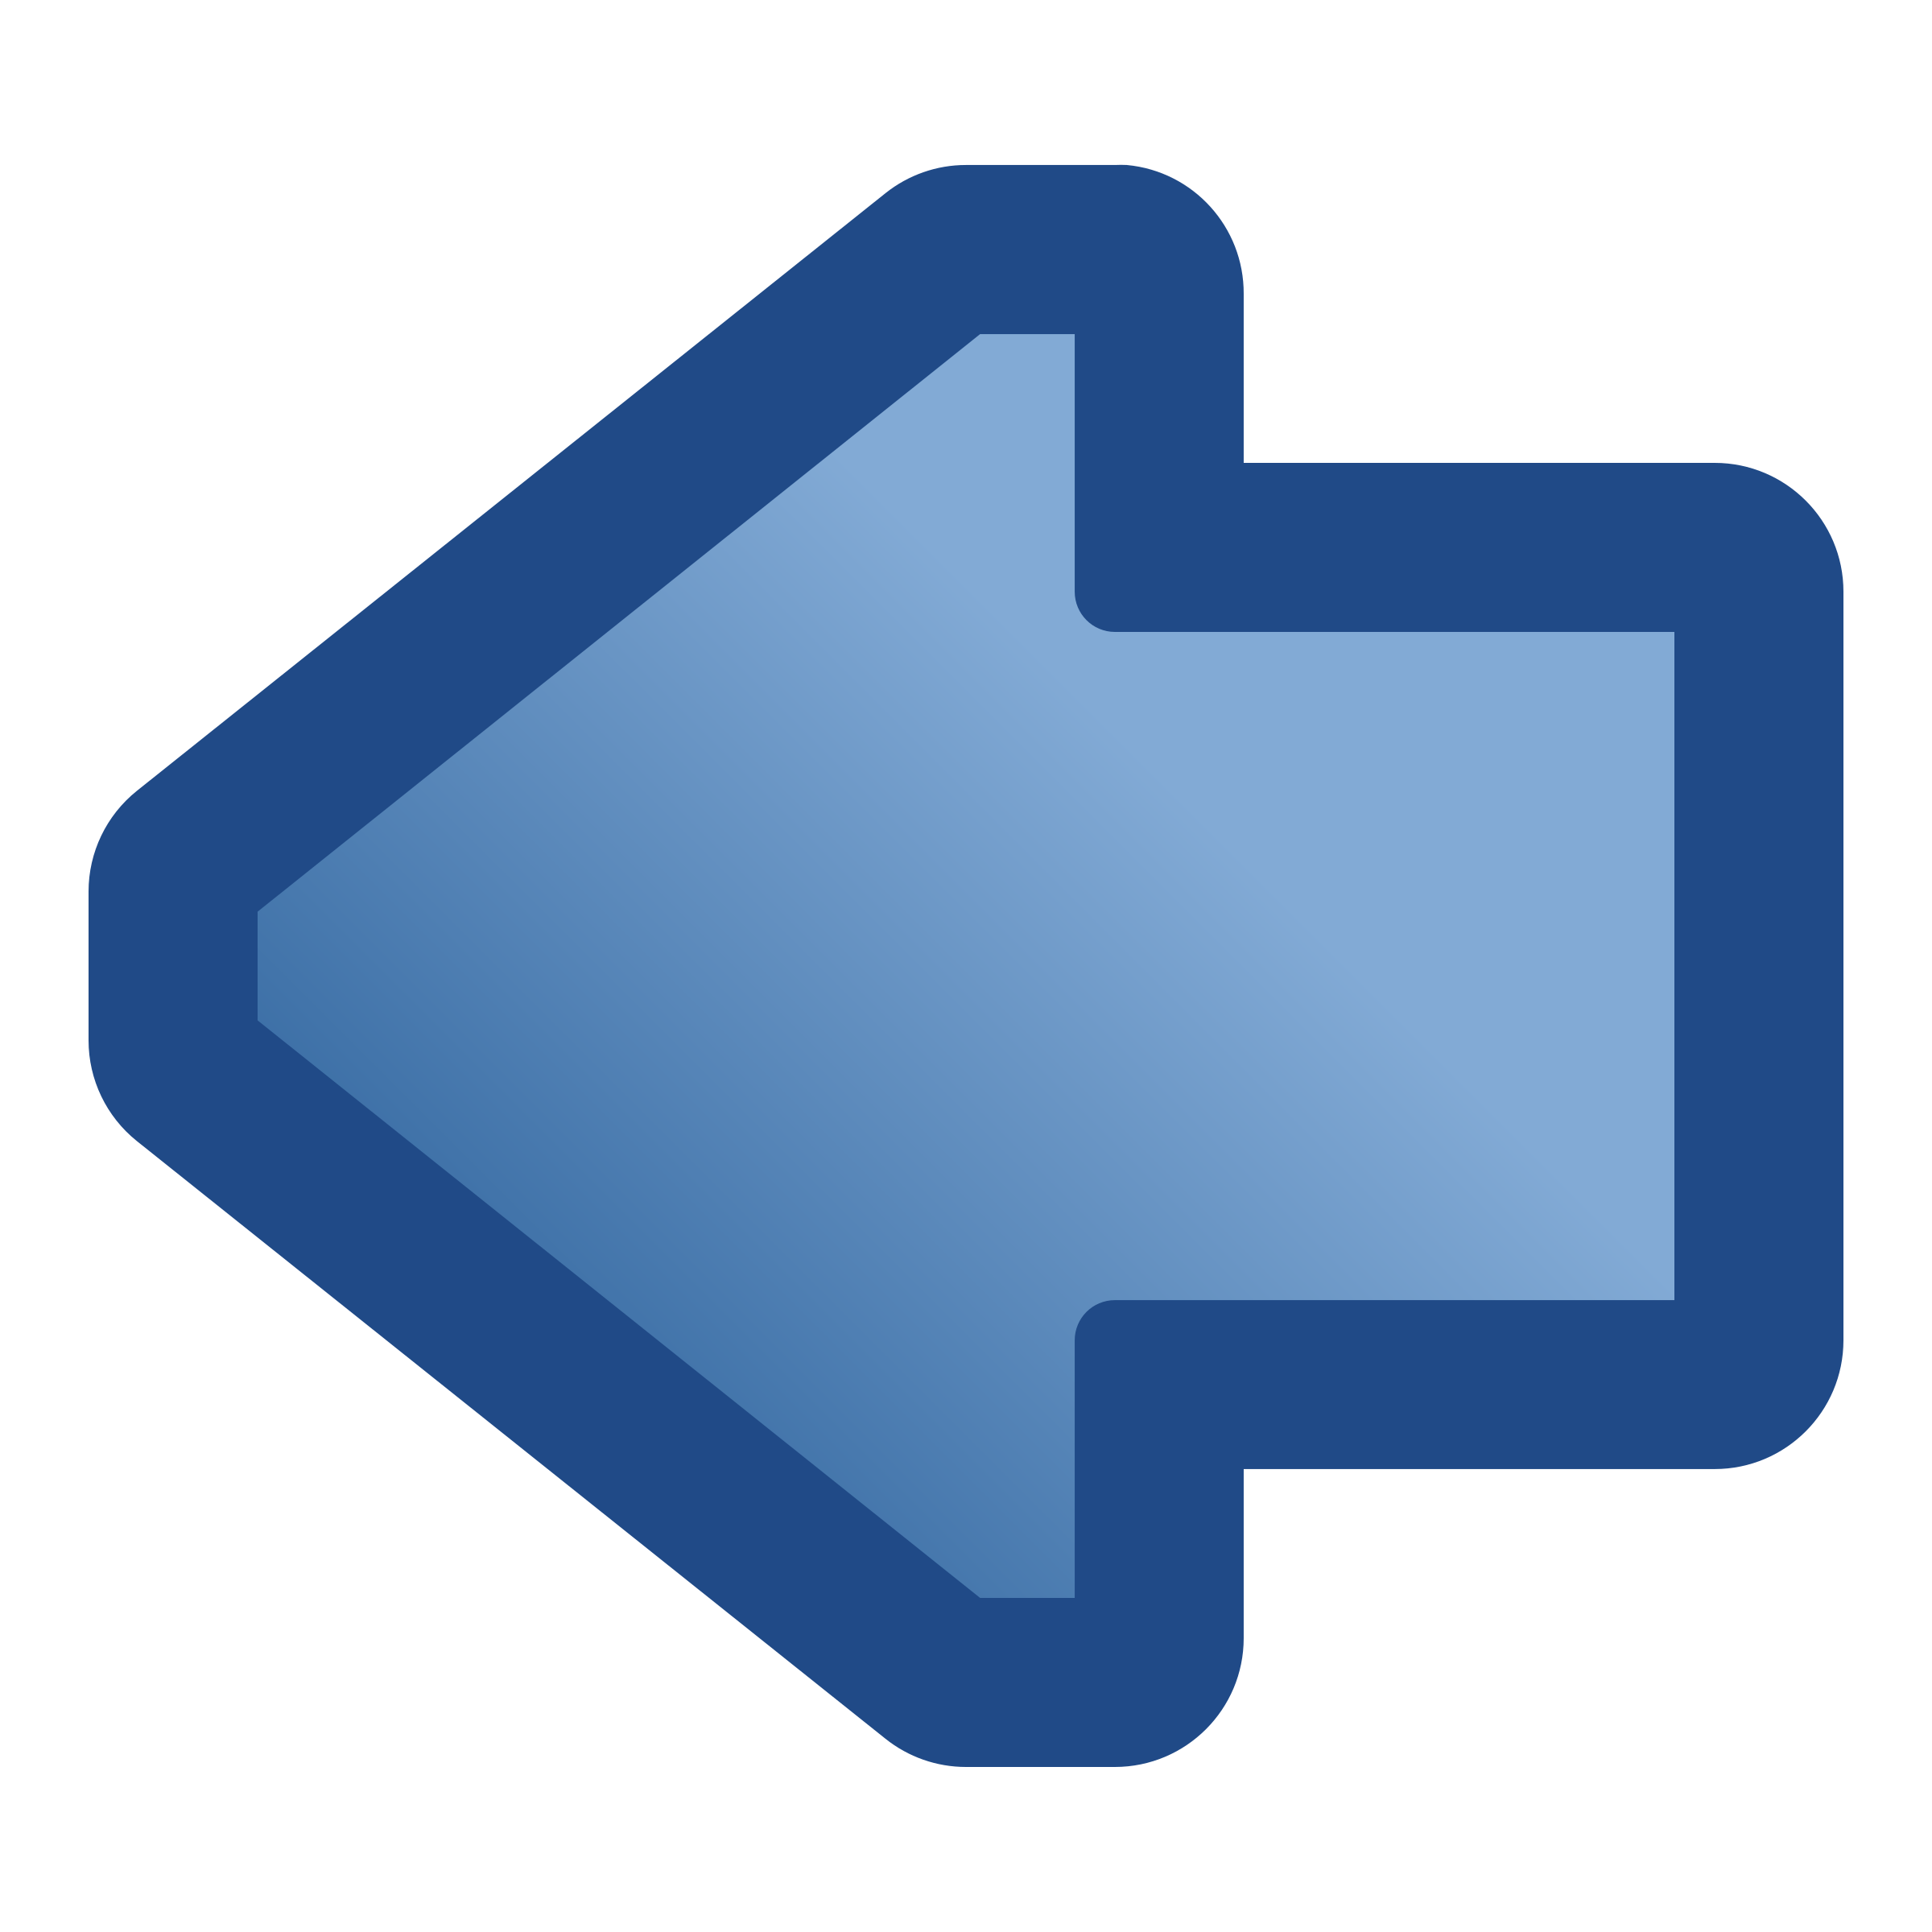 icon_arrow_left_blue by jean_victor_balin